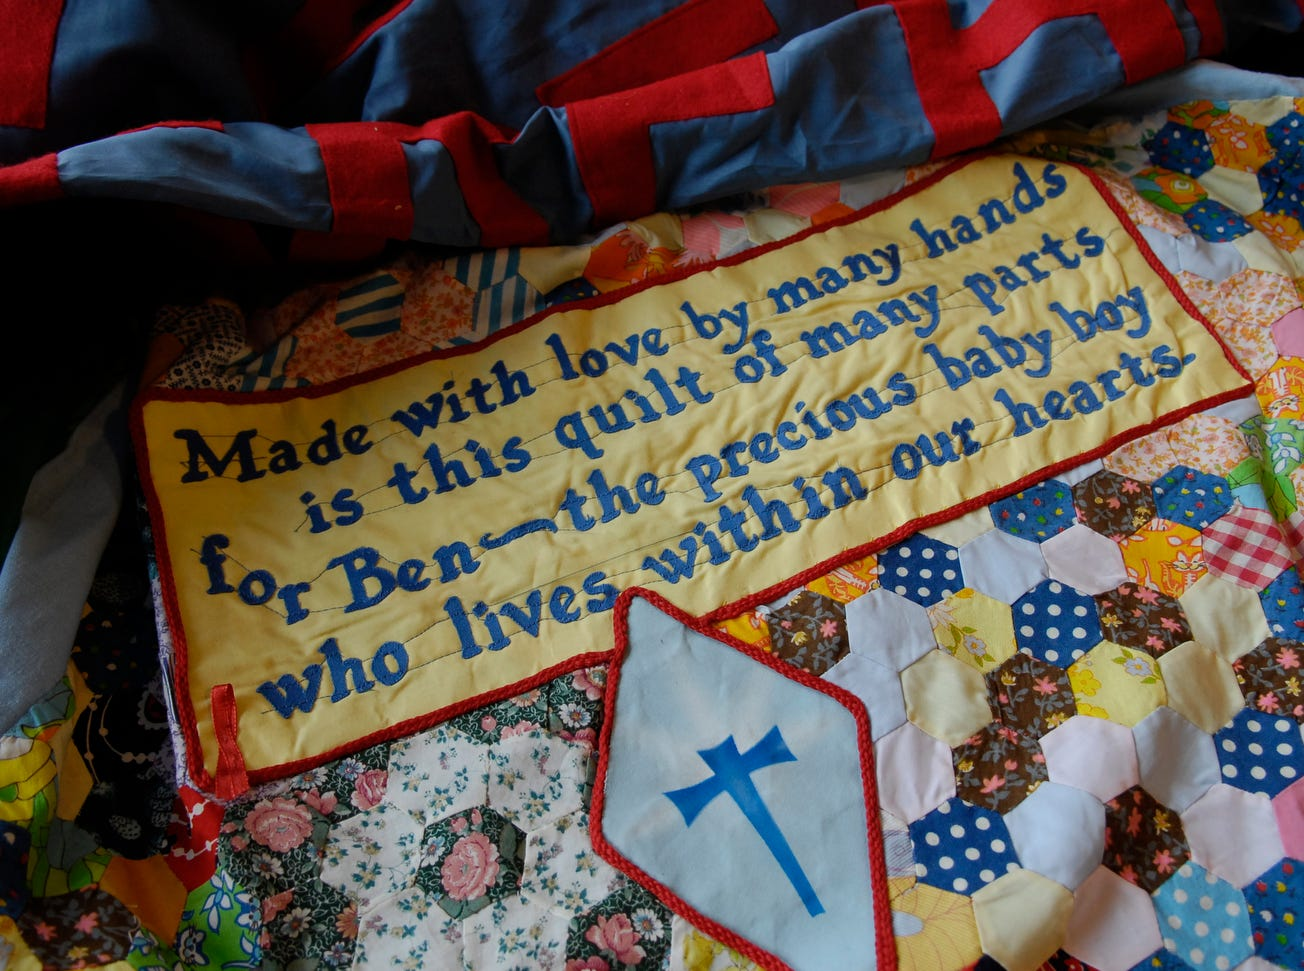 A detail from a panel created by 4 generations of the family of Benjamin Thomas West-Campbell, of Washington state, who died in 1992, when he was 4 months-old is seen in 2006 at The NAMES Project Foundation headquarters.